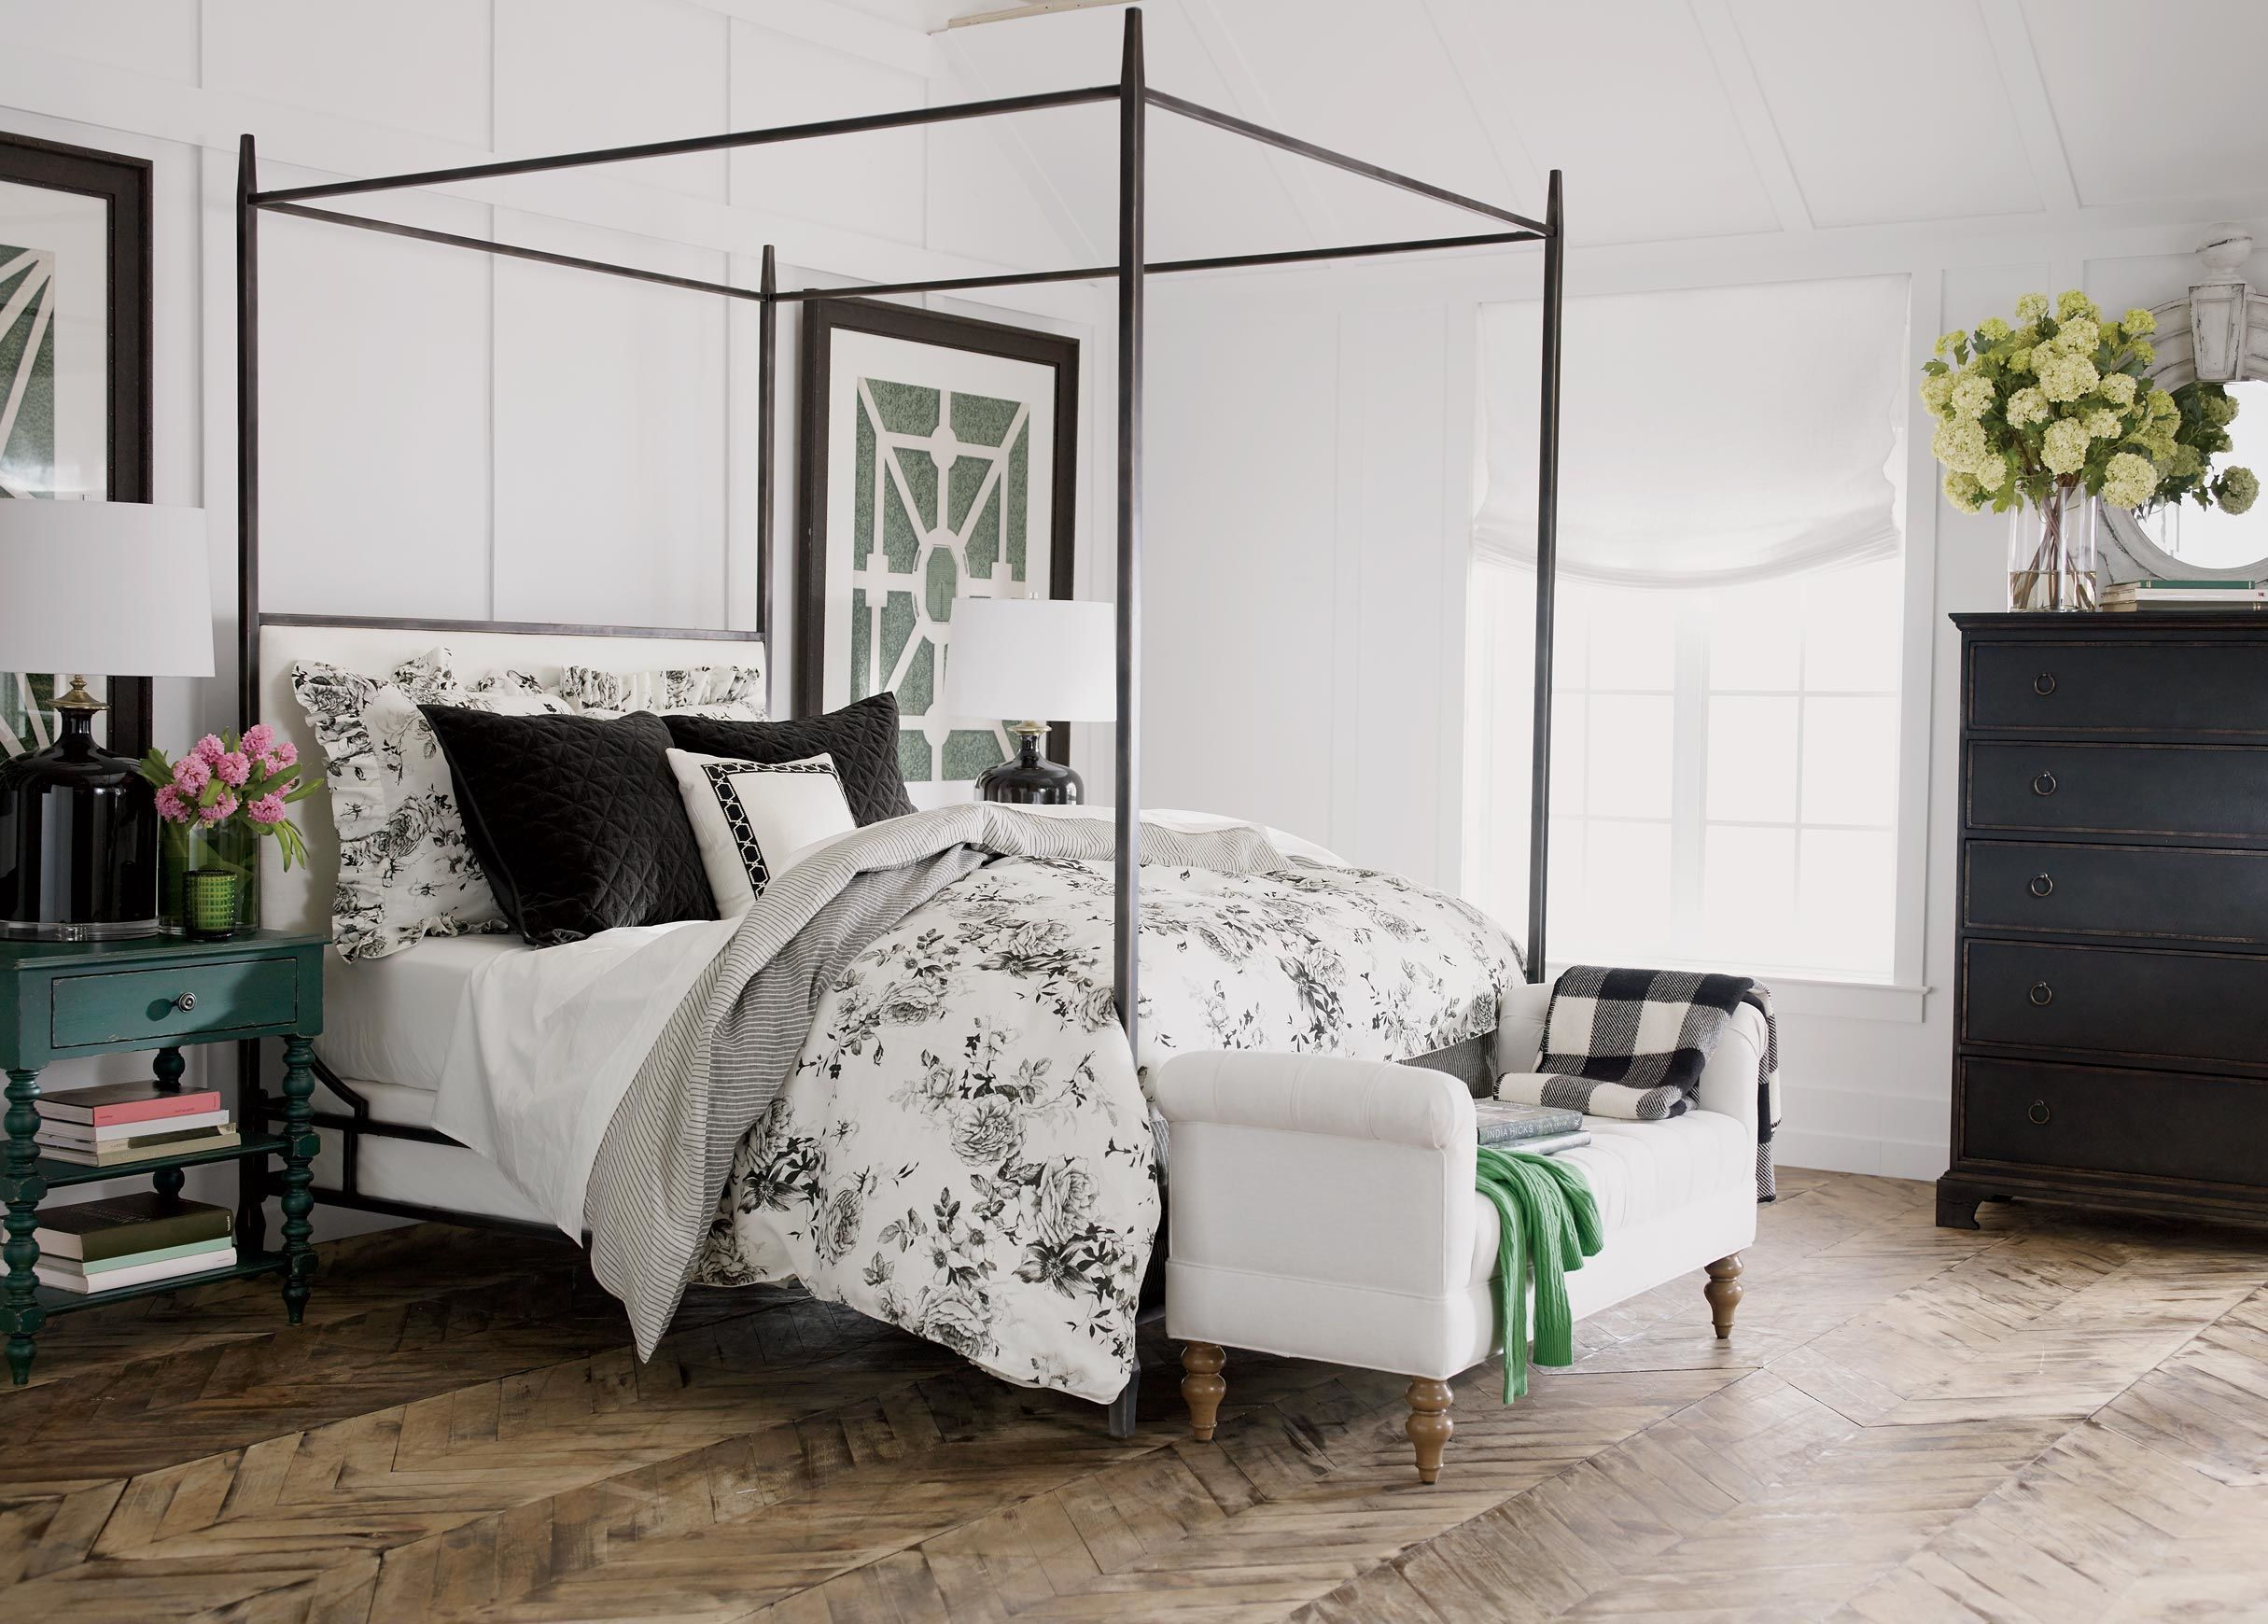 Ethan Allen Bedroom Collection.New Country By Ethan Allen ...